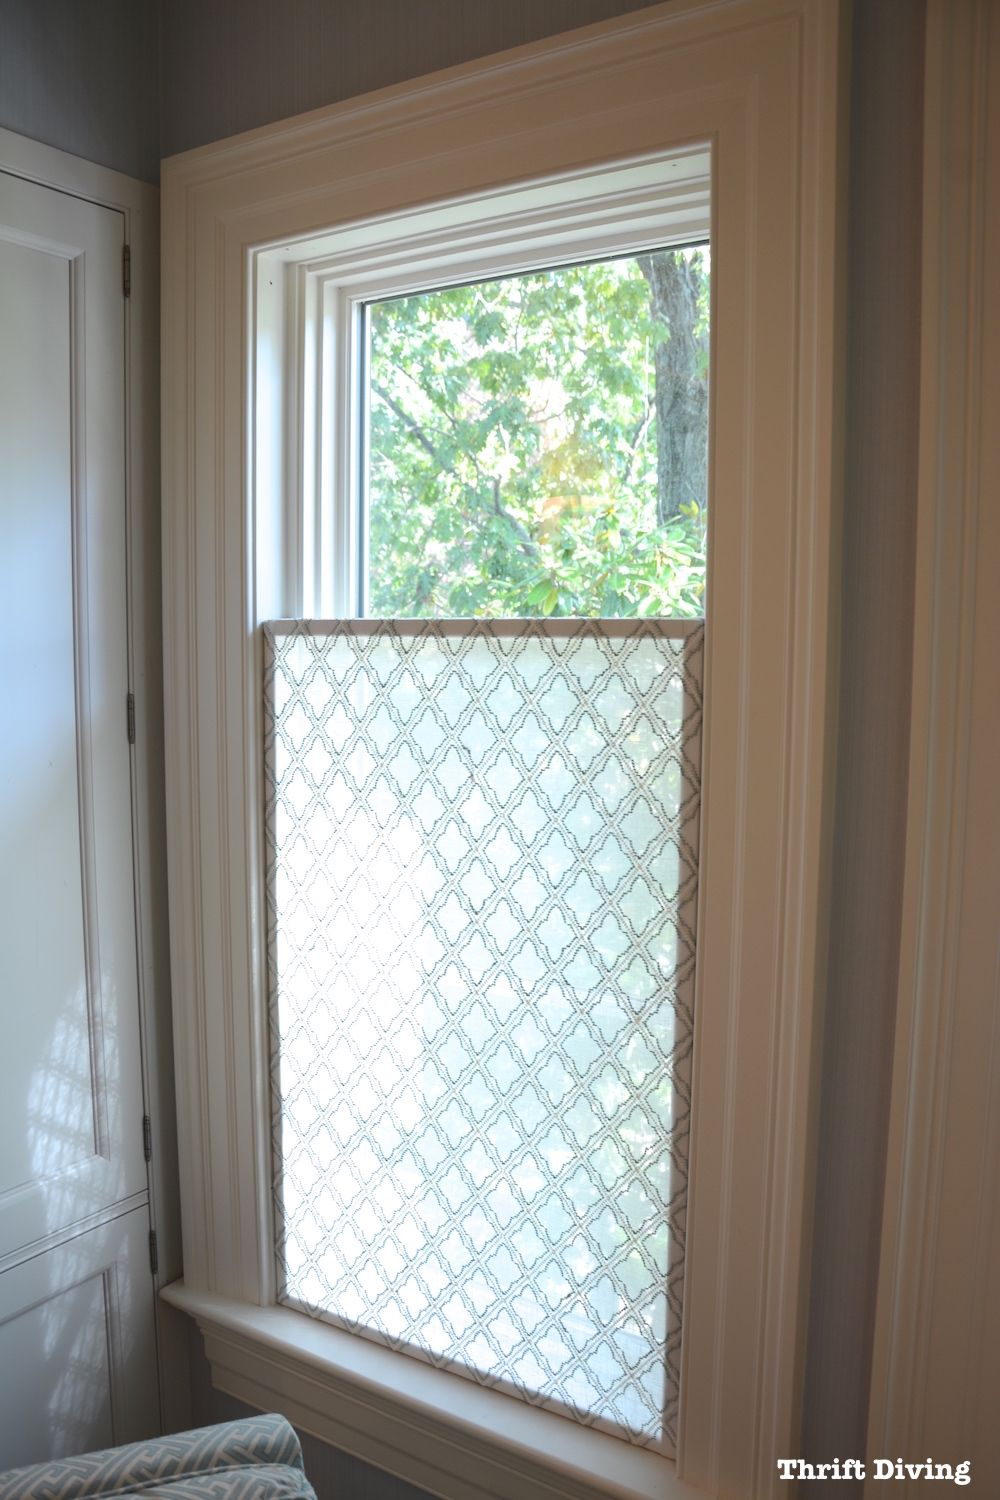 How to make a pretty diy window privacy screen bathroom for Window blinds with designs